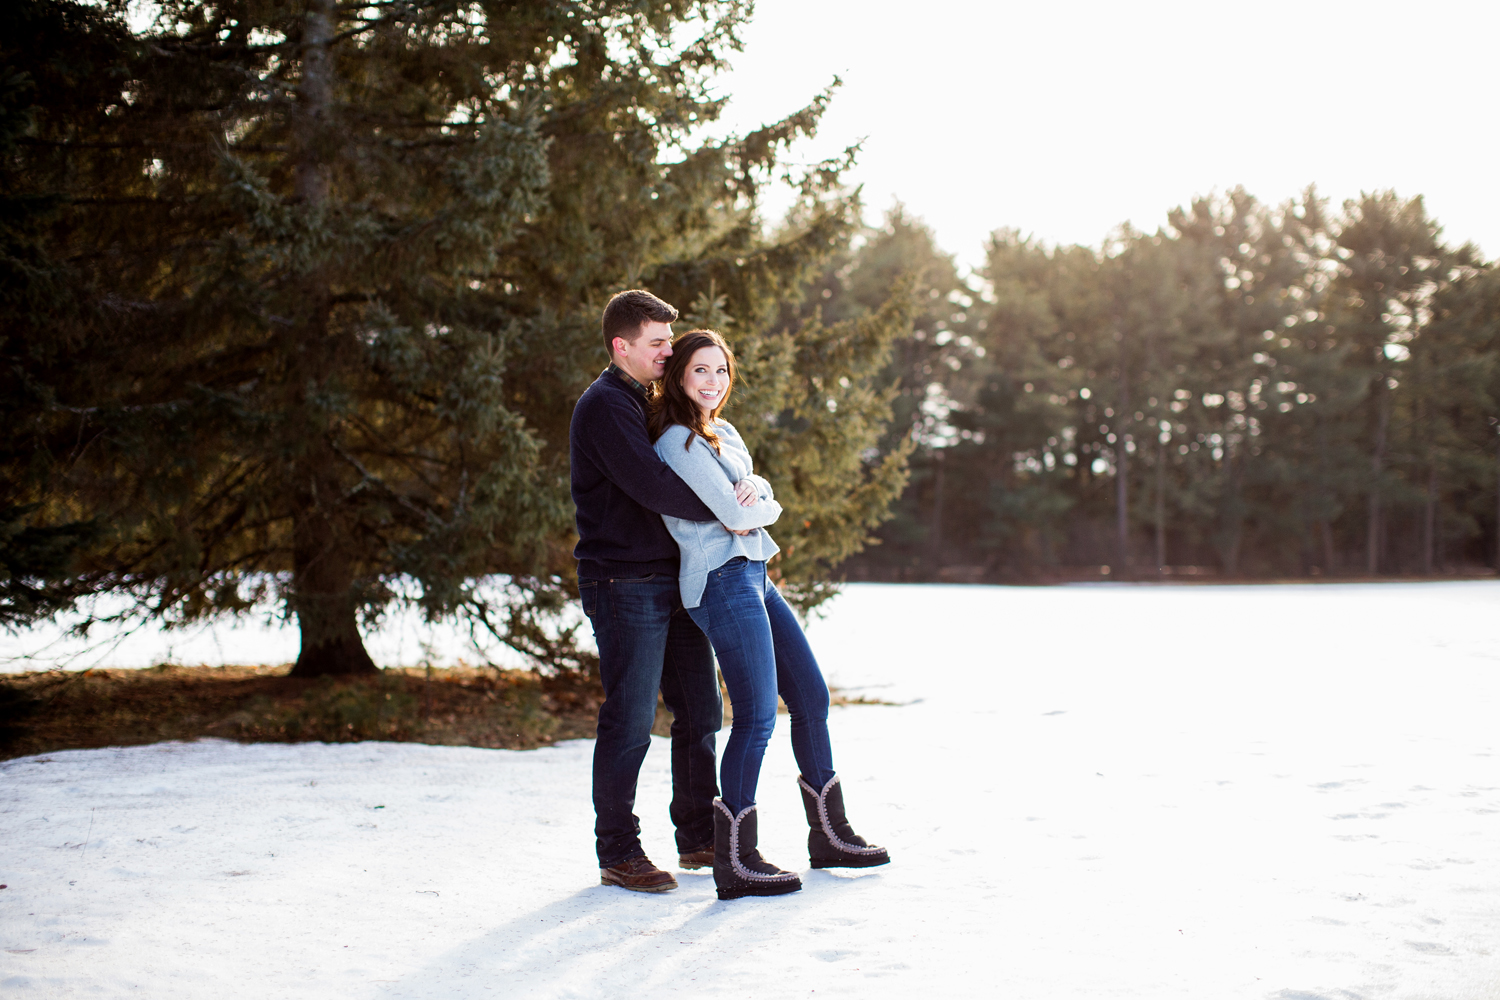 winter engagement photography saratoga ny29.jpg